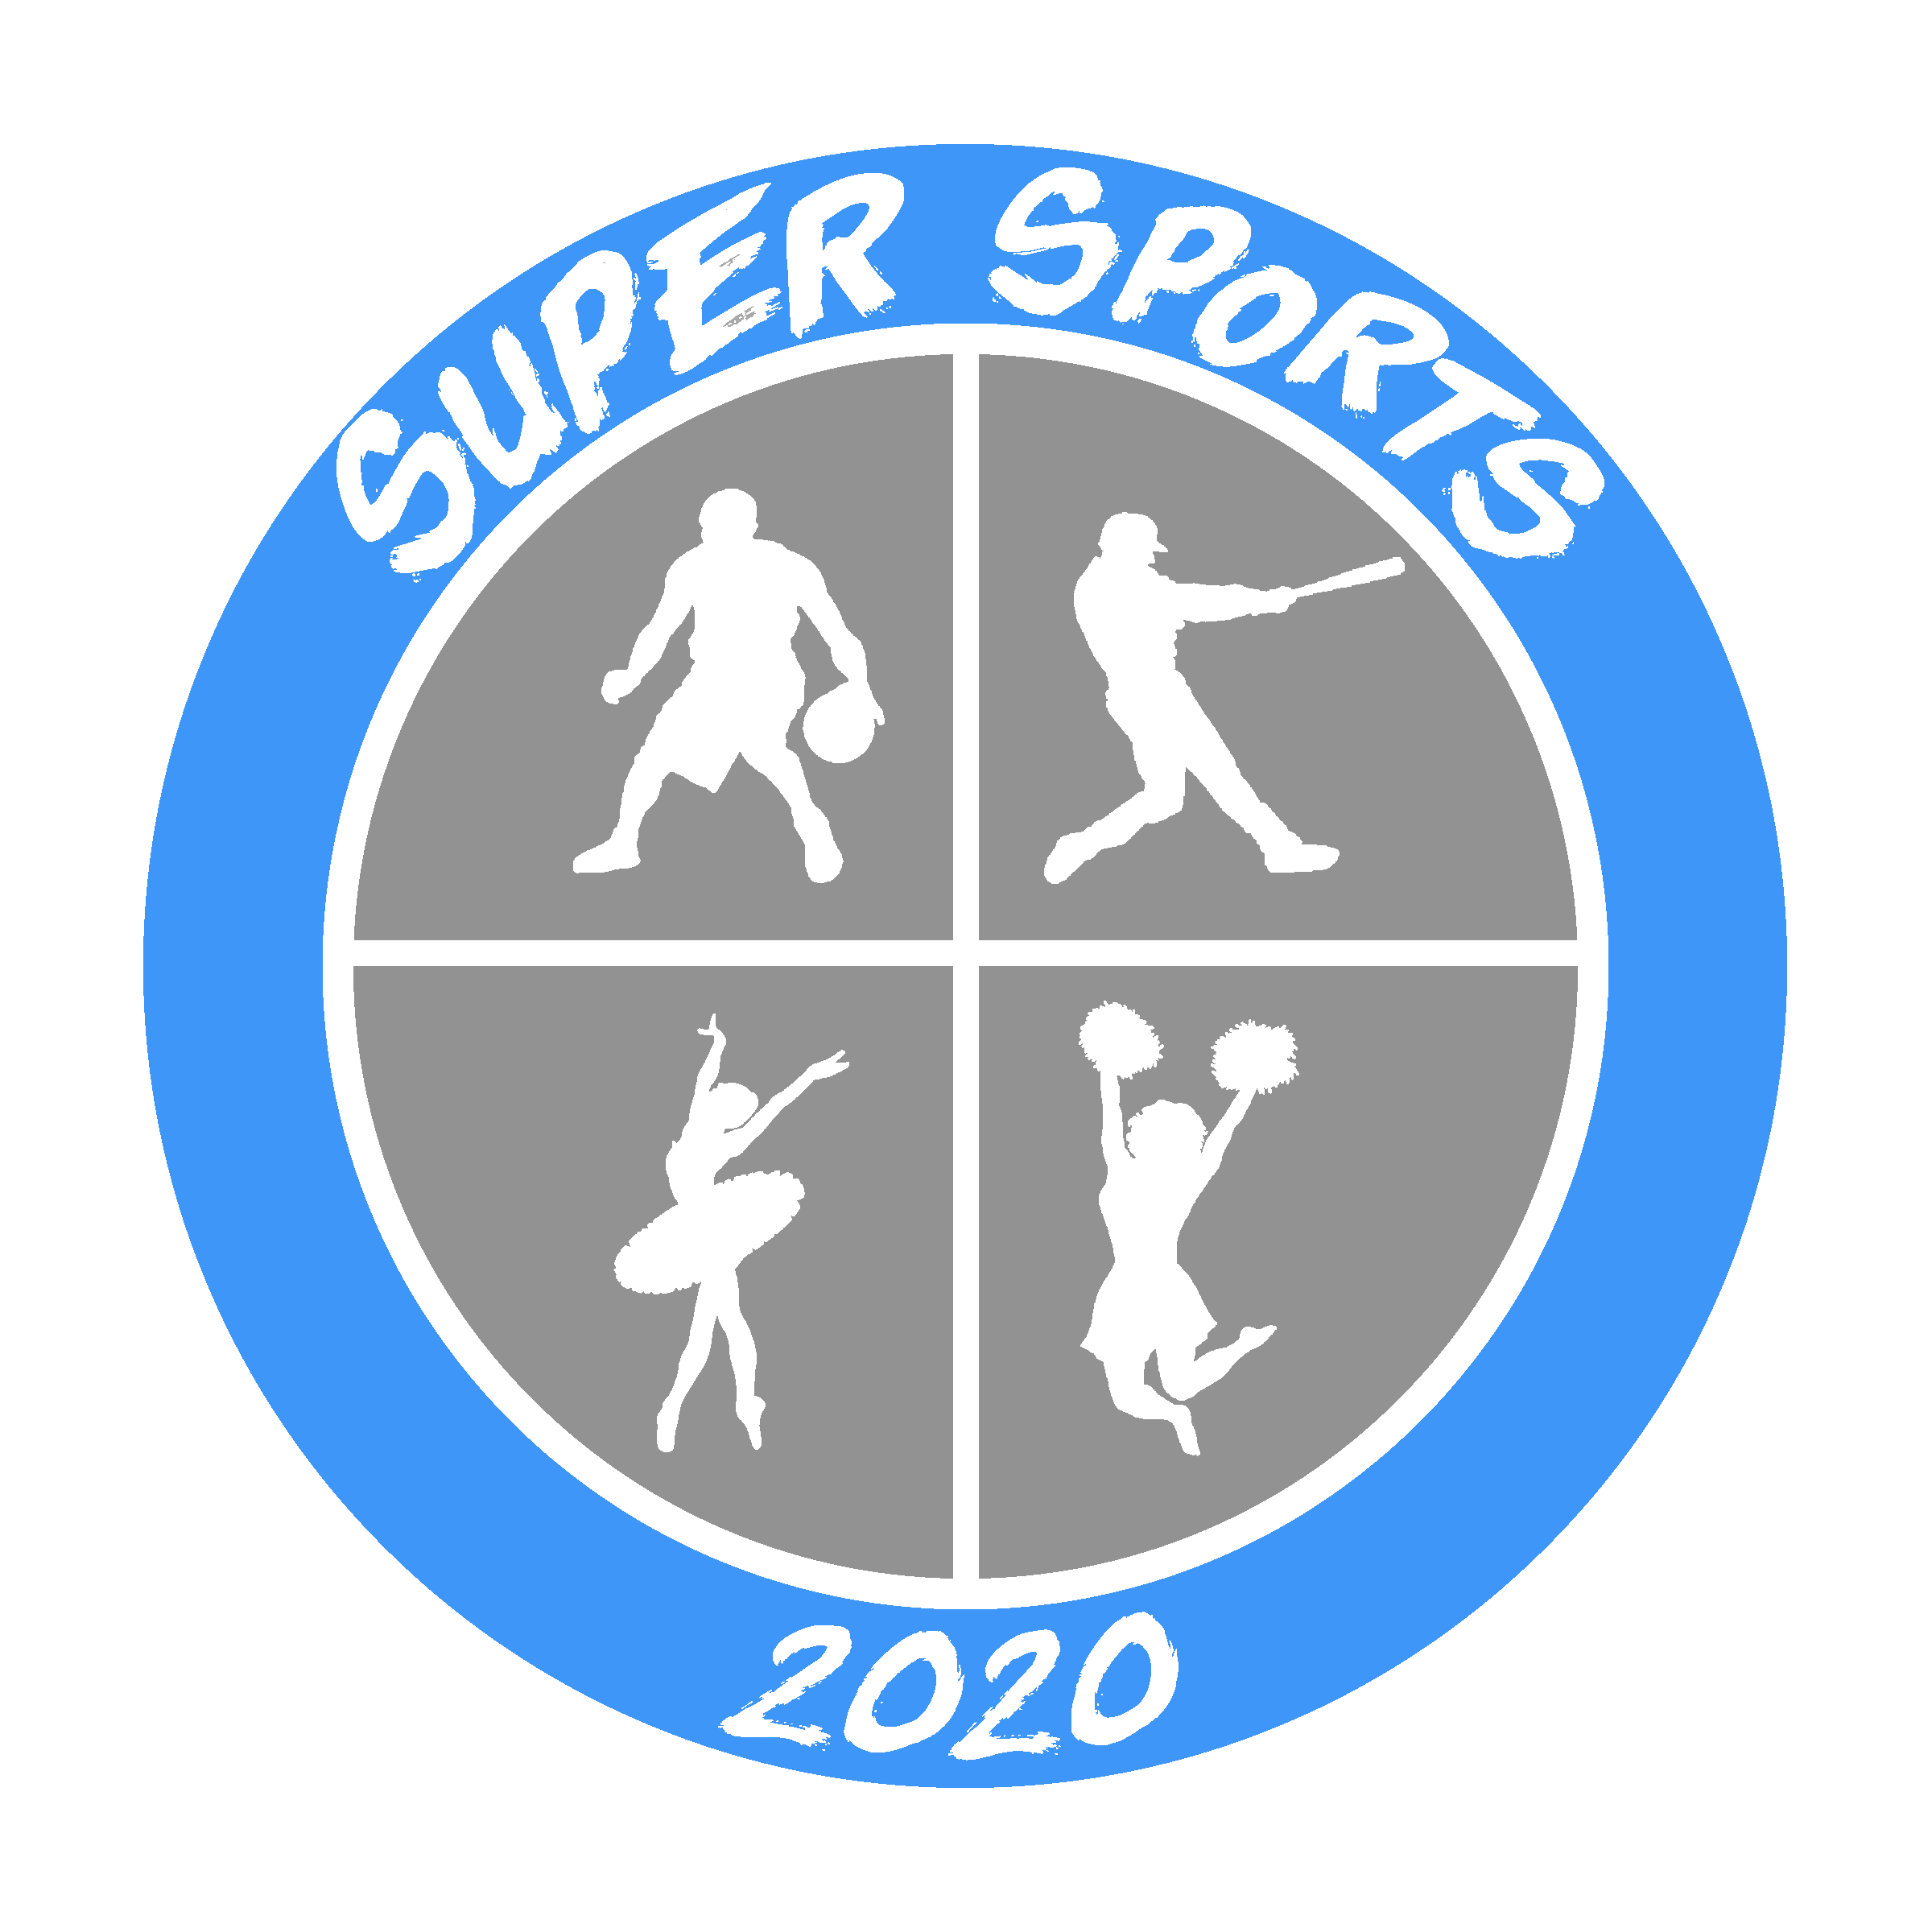 Super Sports color logo